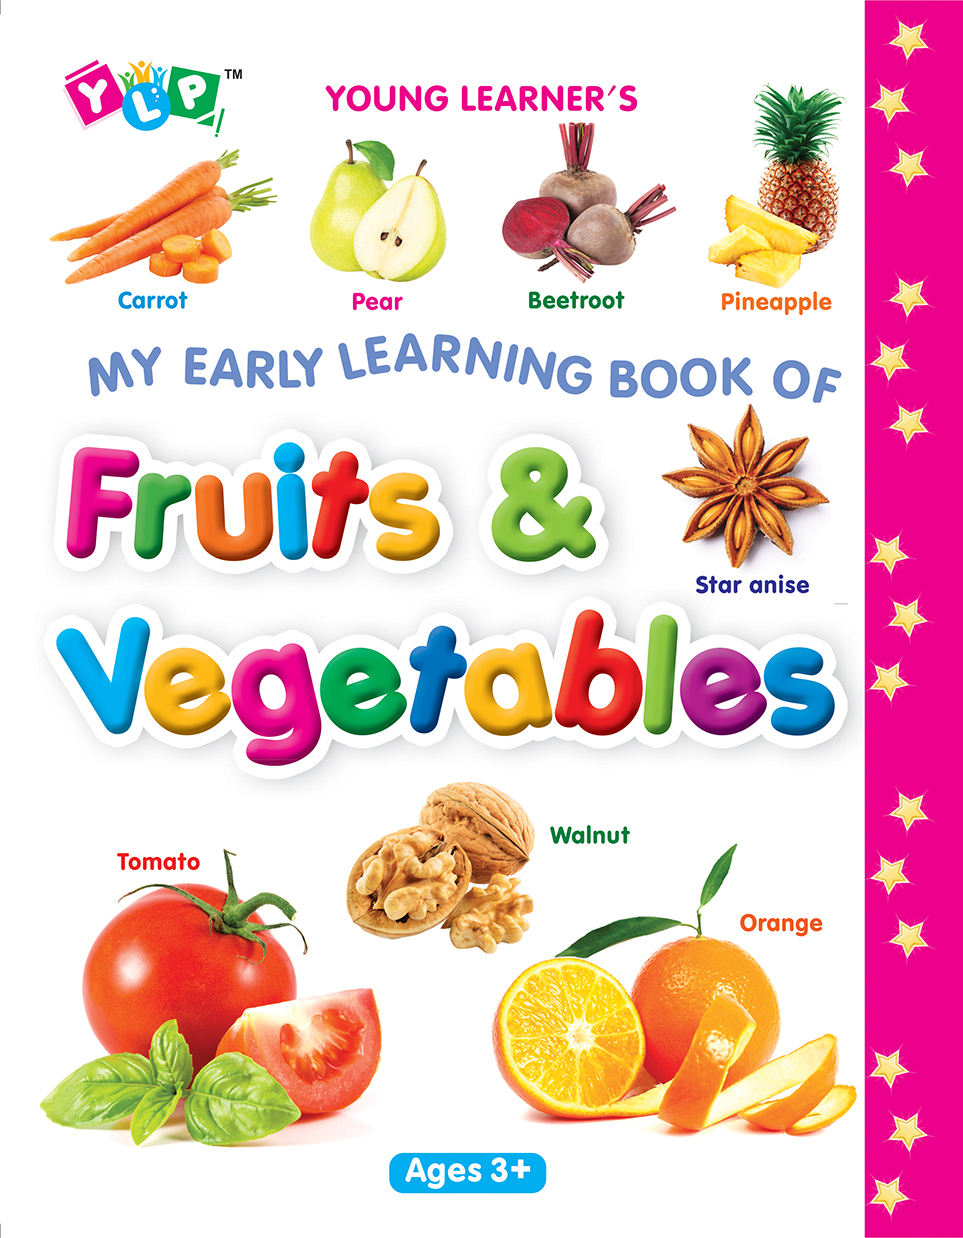 My Early Learning Book of Fruits & Vegetables (Full Laminated)